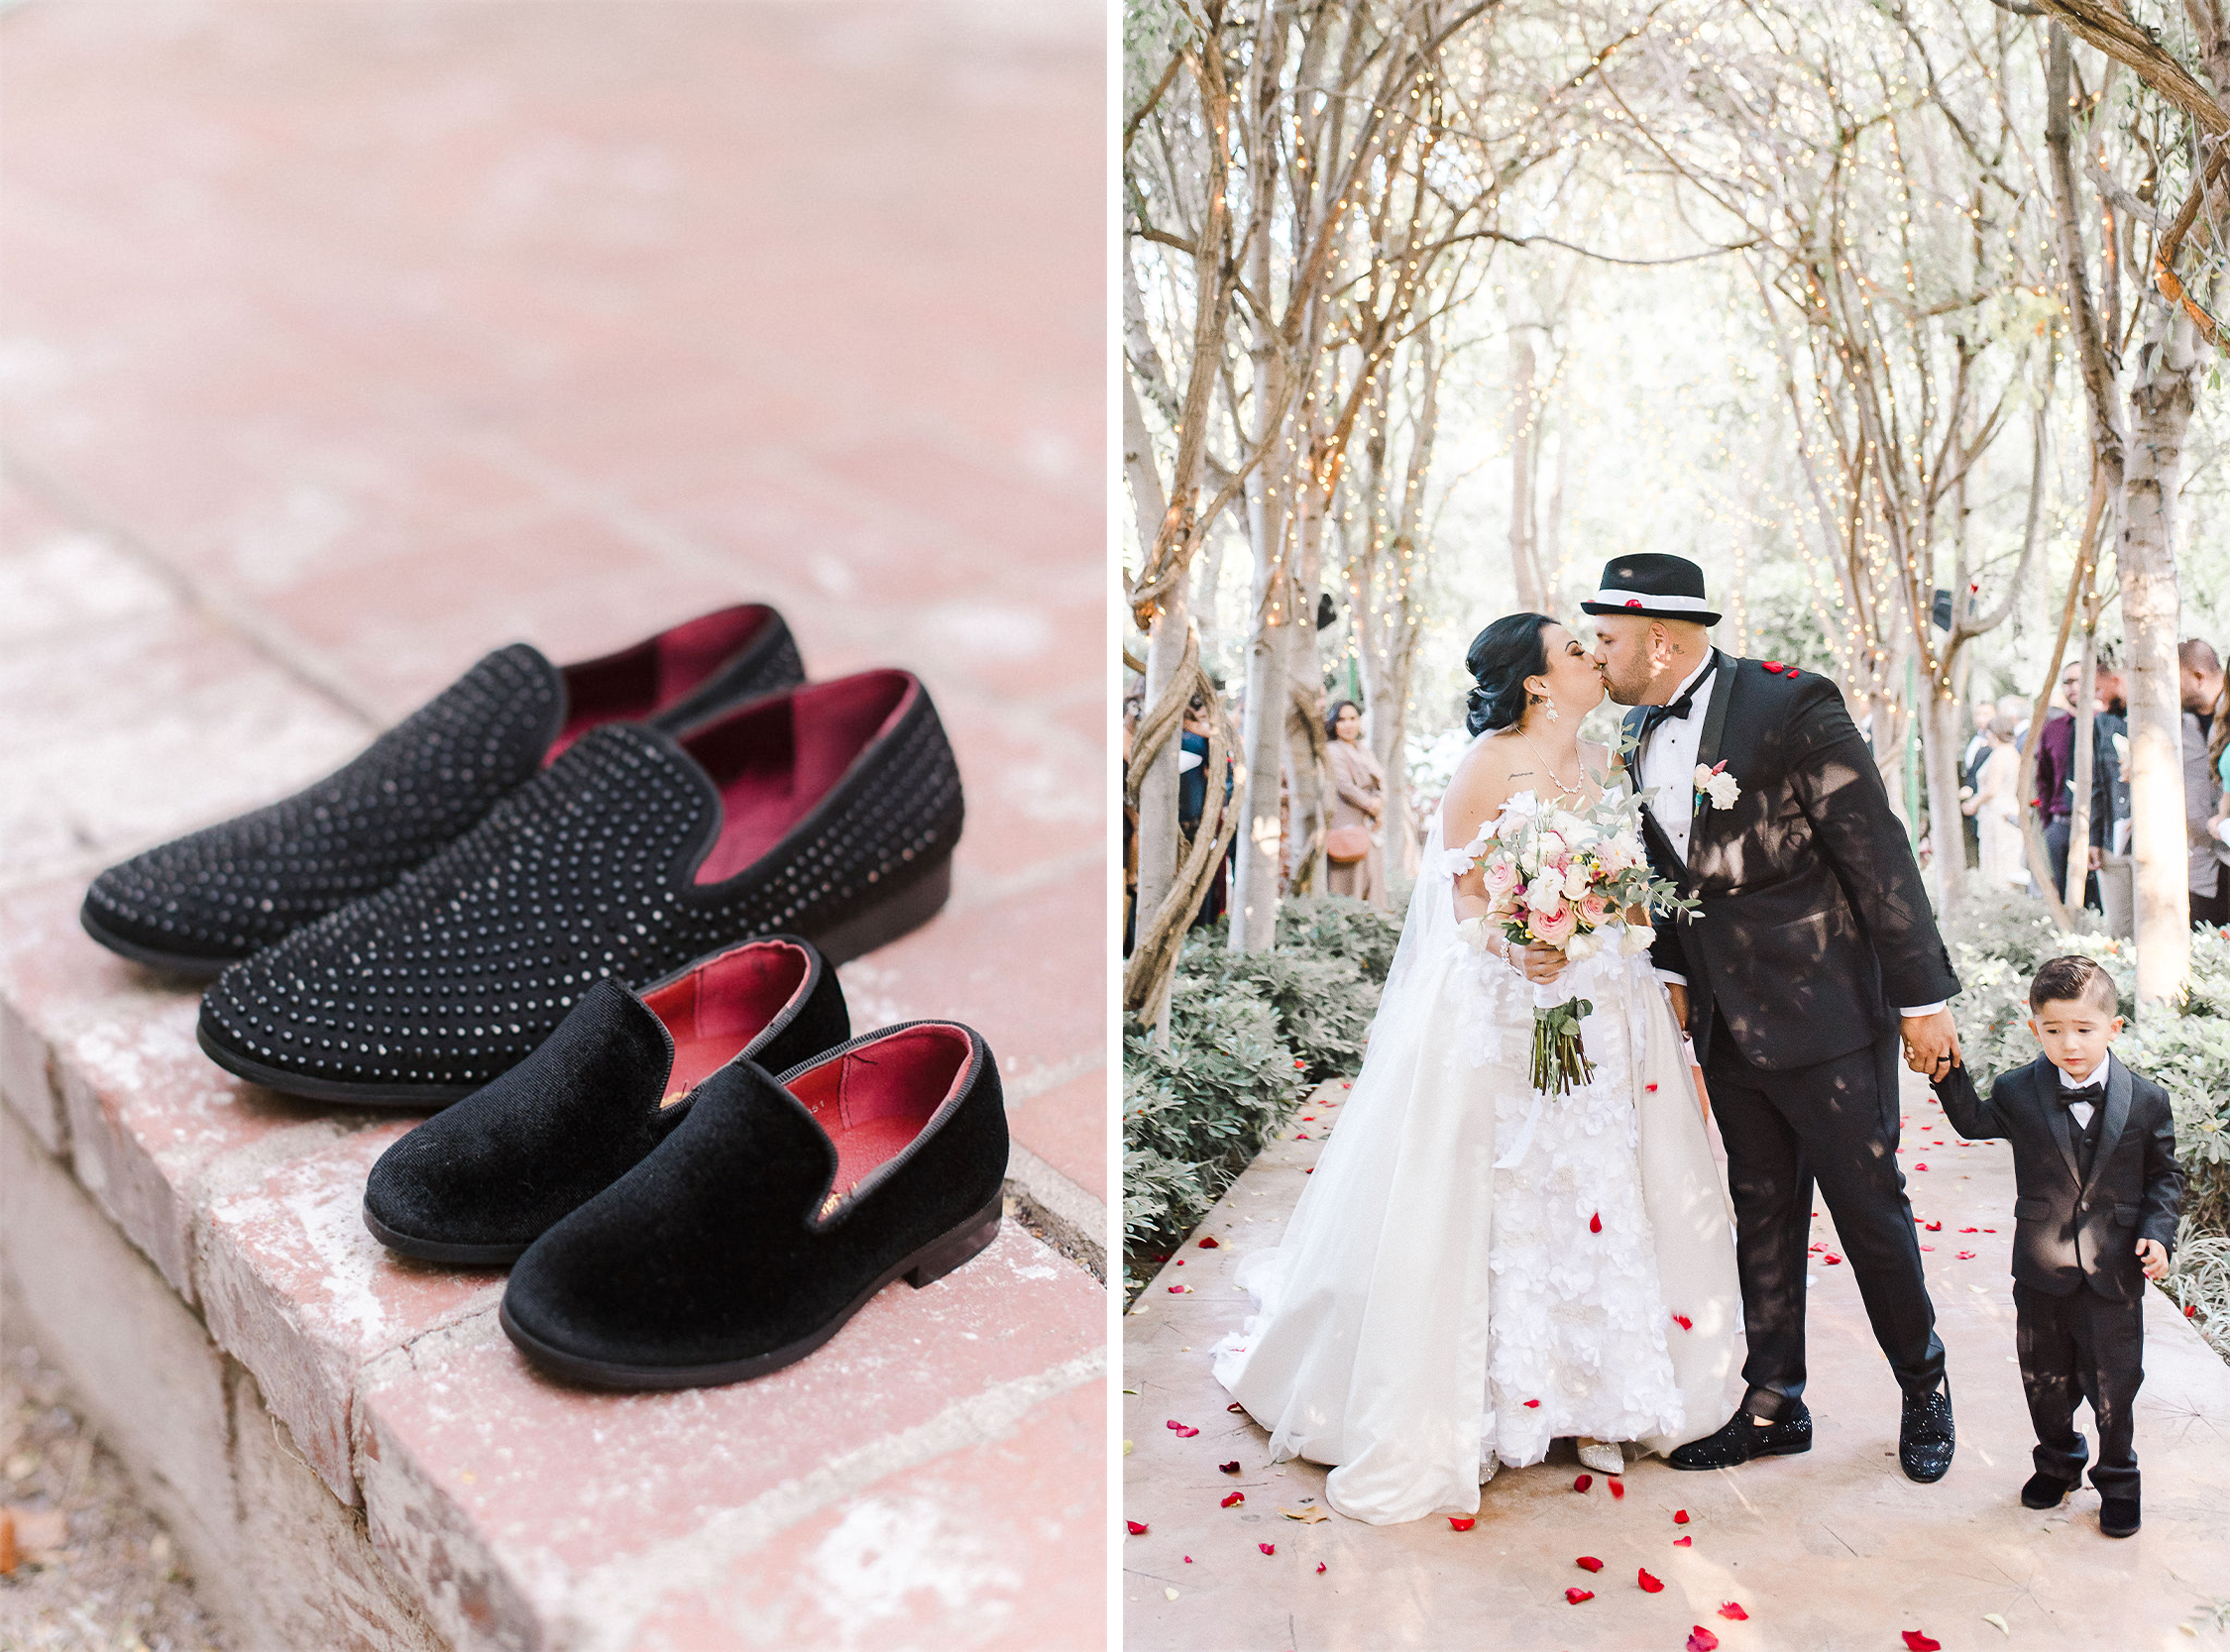 Matching Father/Son Wedding Shoes